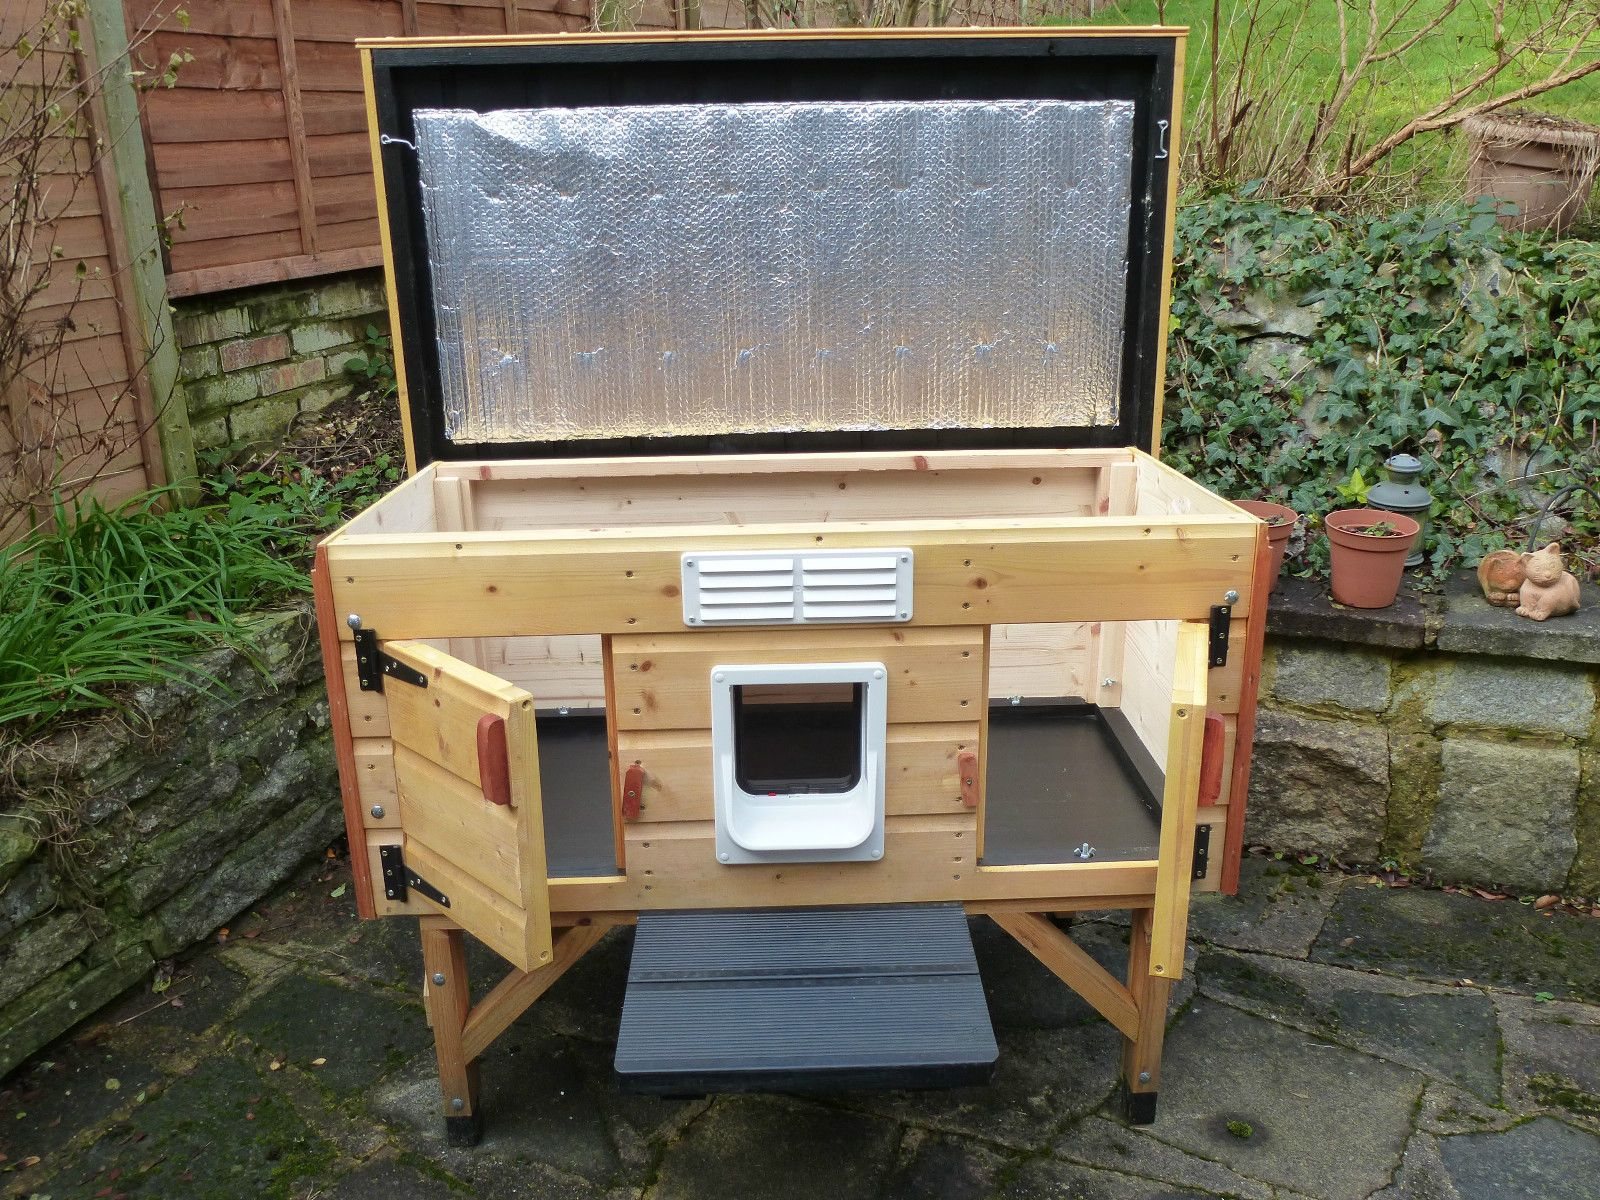 Wooden Outdoor Cat House Shelter For Up To 2 Cats Quality Build Vgc Ebay